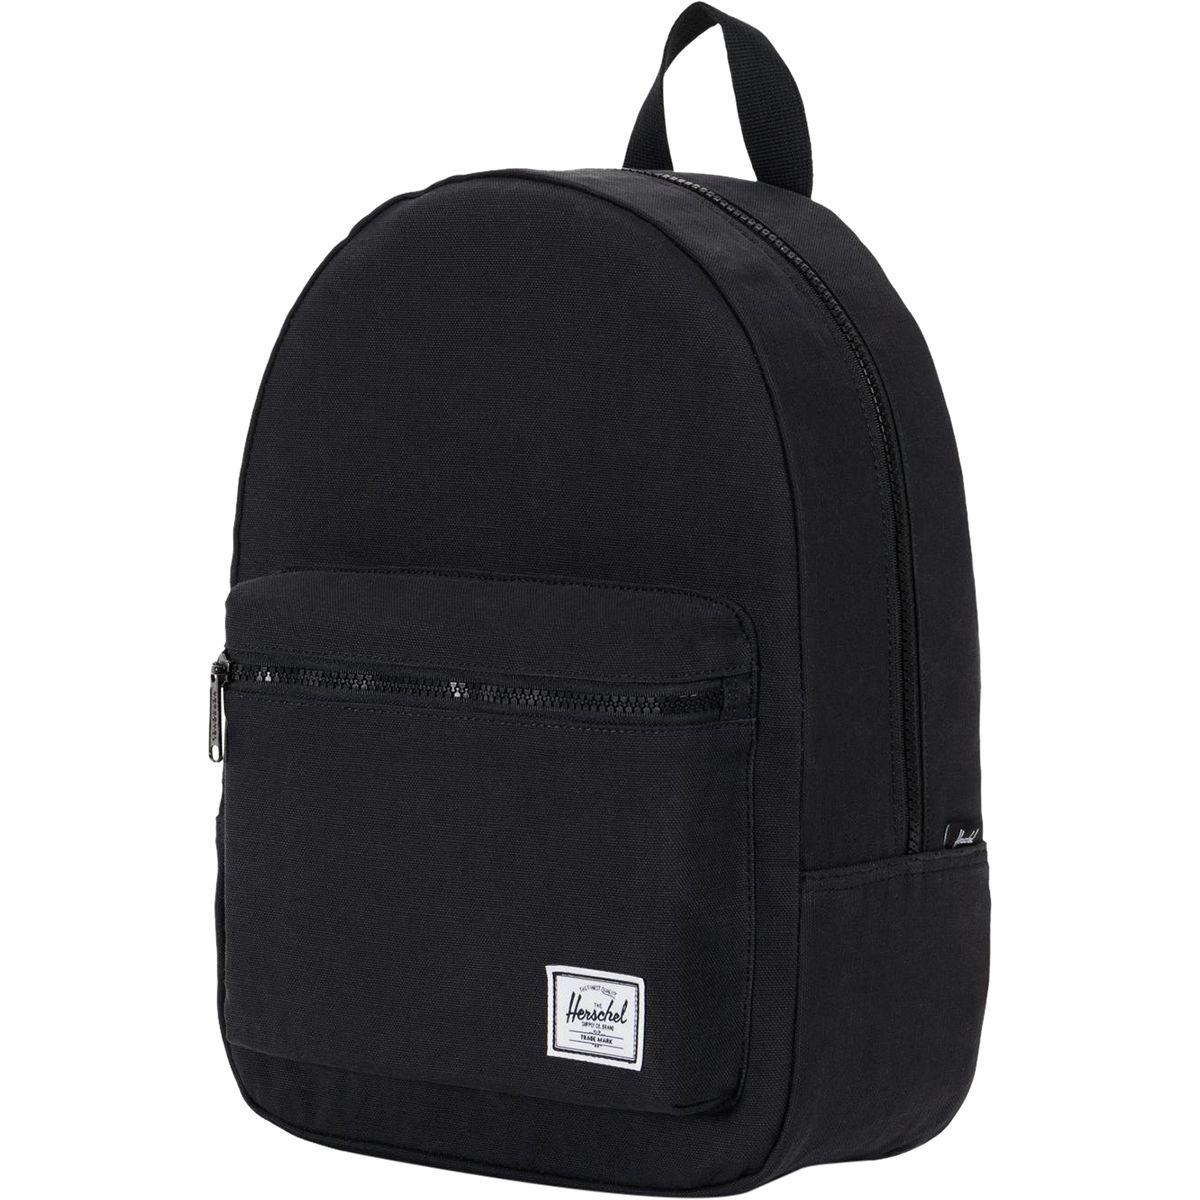 f4b449b71e1f Lyst - Herschel Supply Co. Grove X-small 13.5l Backpack in Black for Men